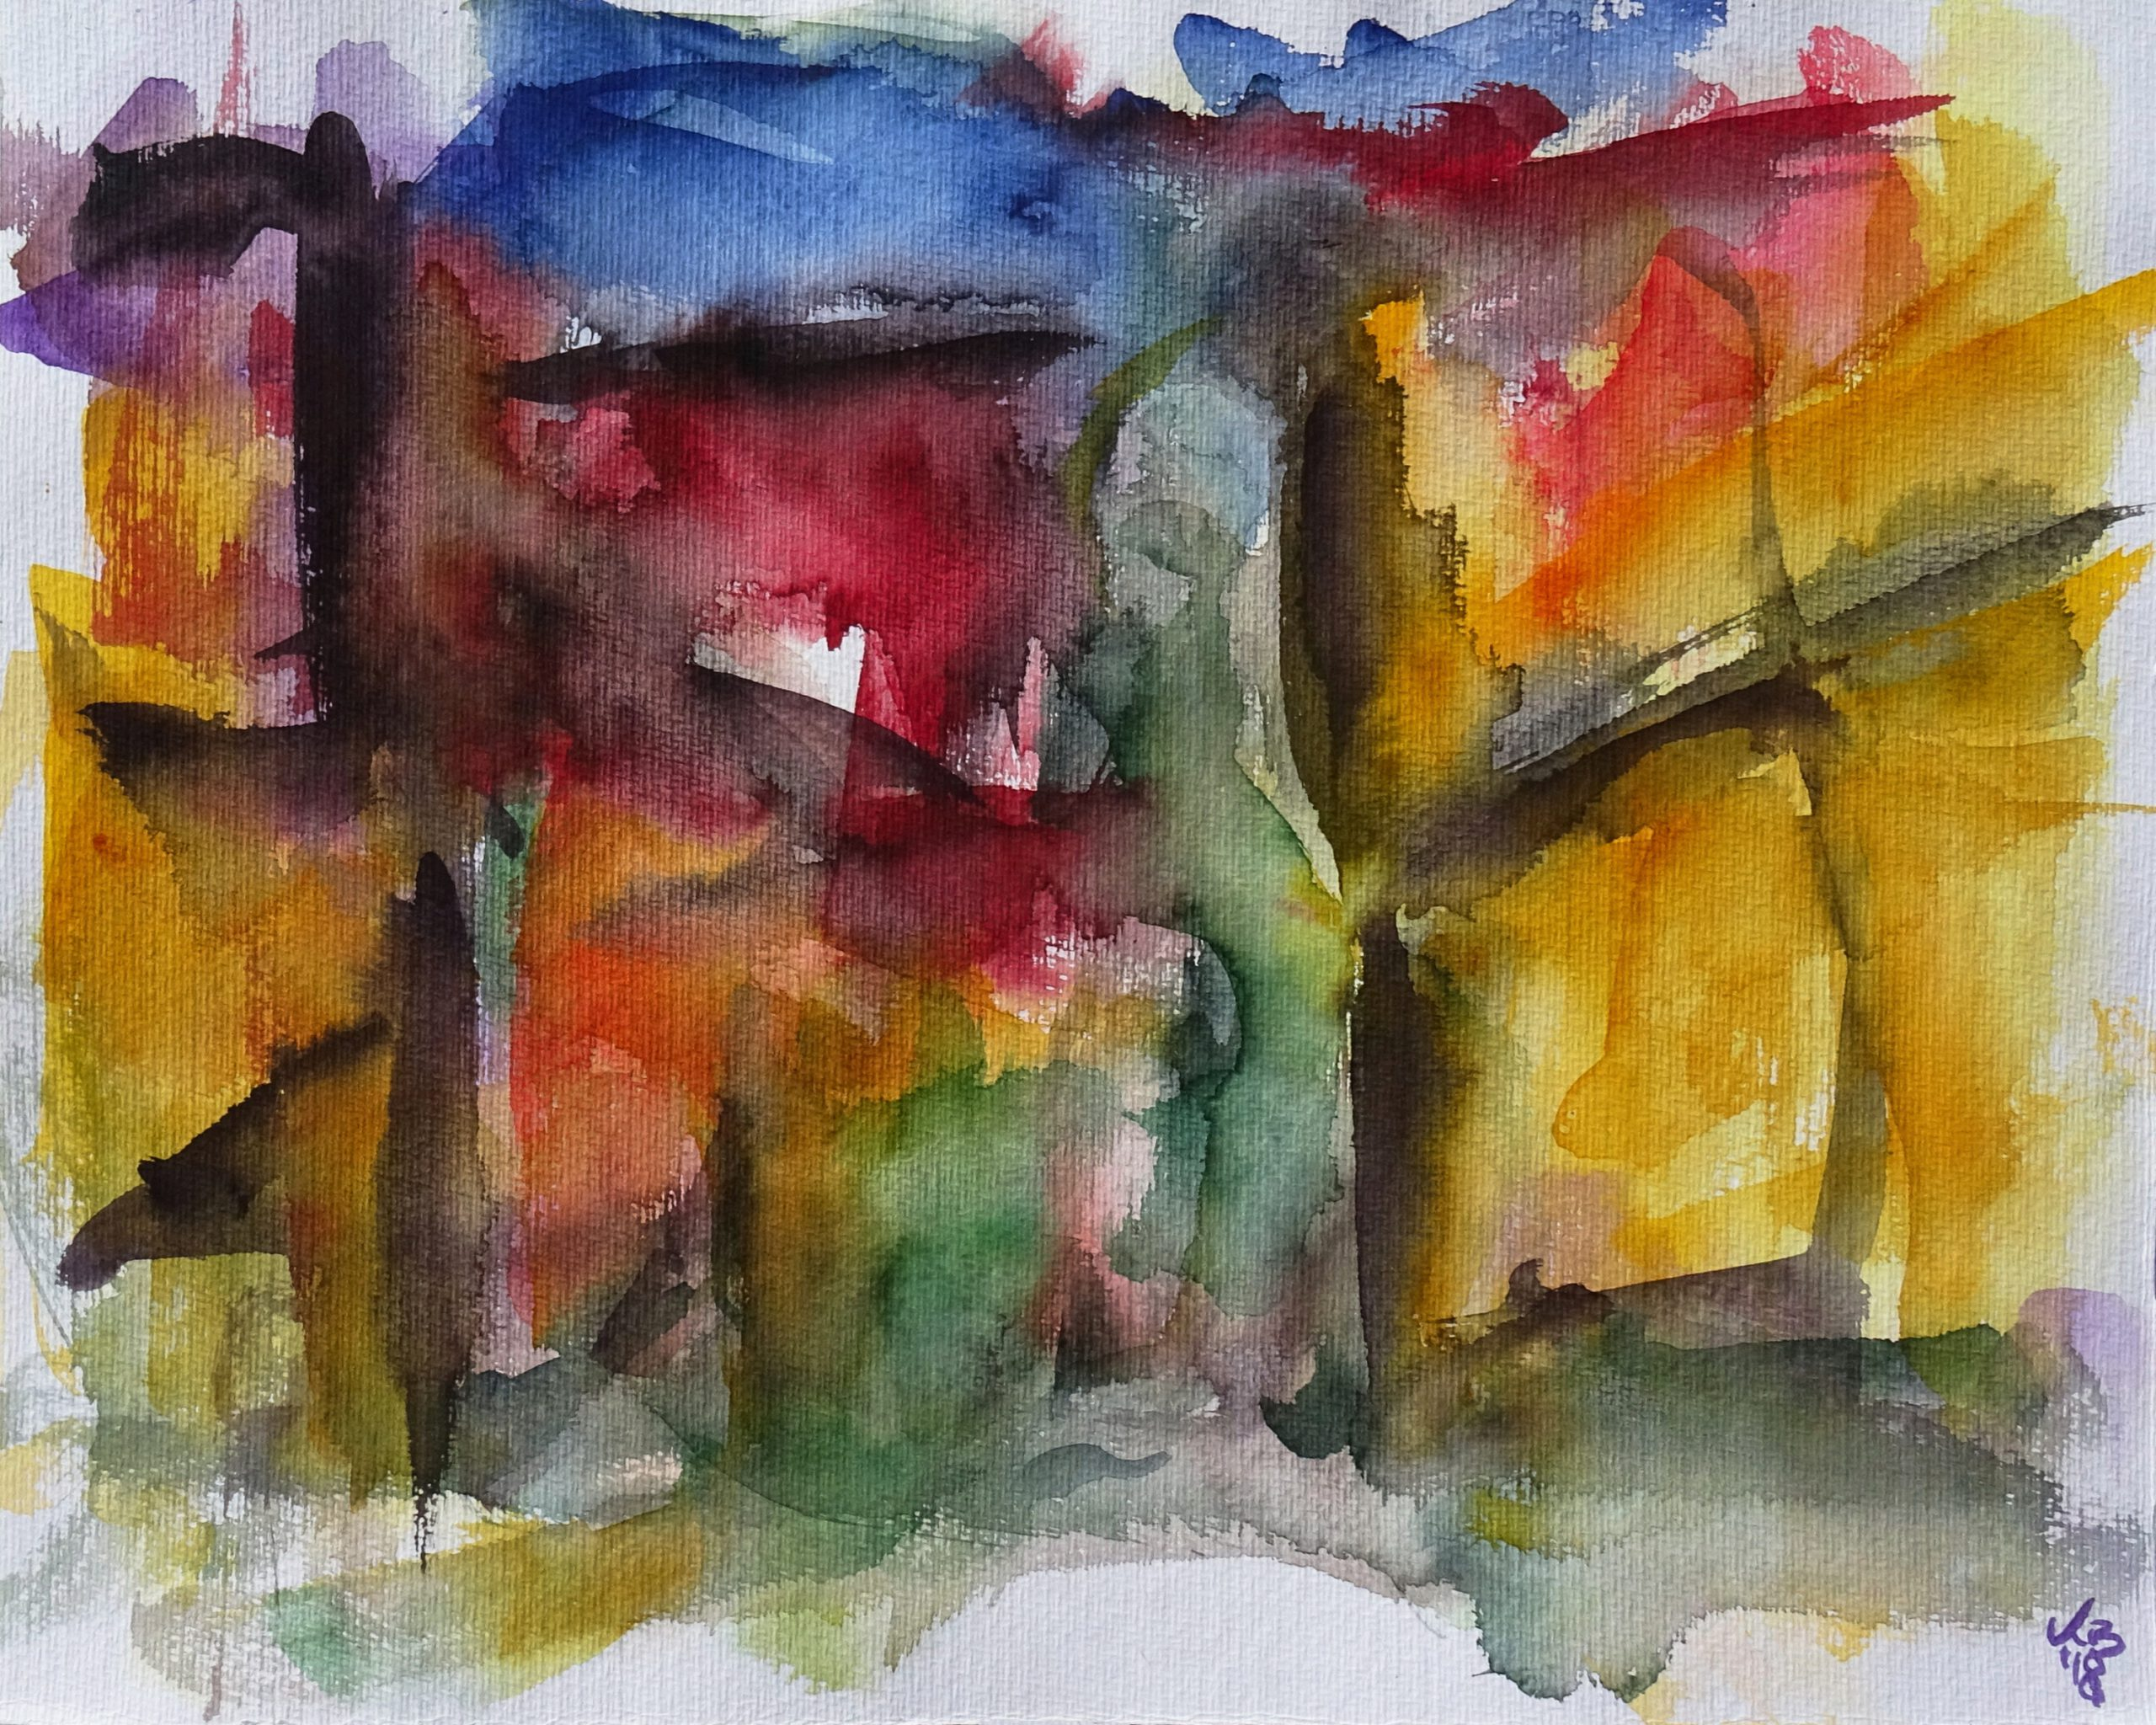 Kreuzgasse, Watercolour 50 x 40 cm, © 2018 by Klaus Bölling